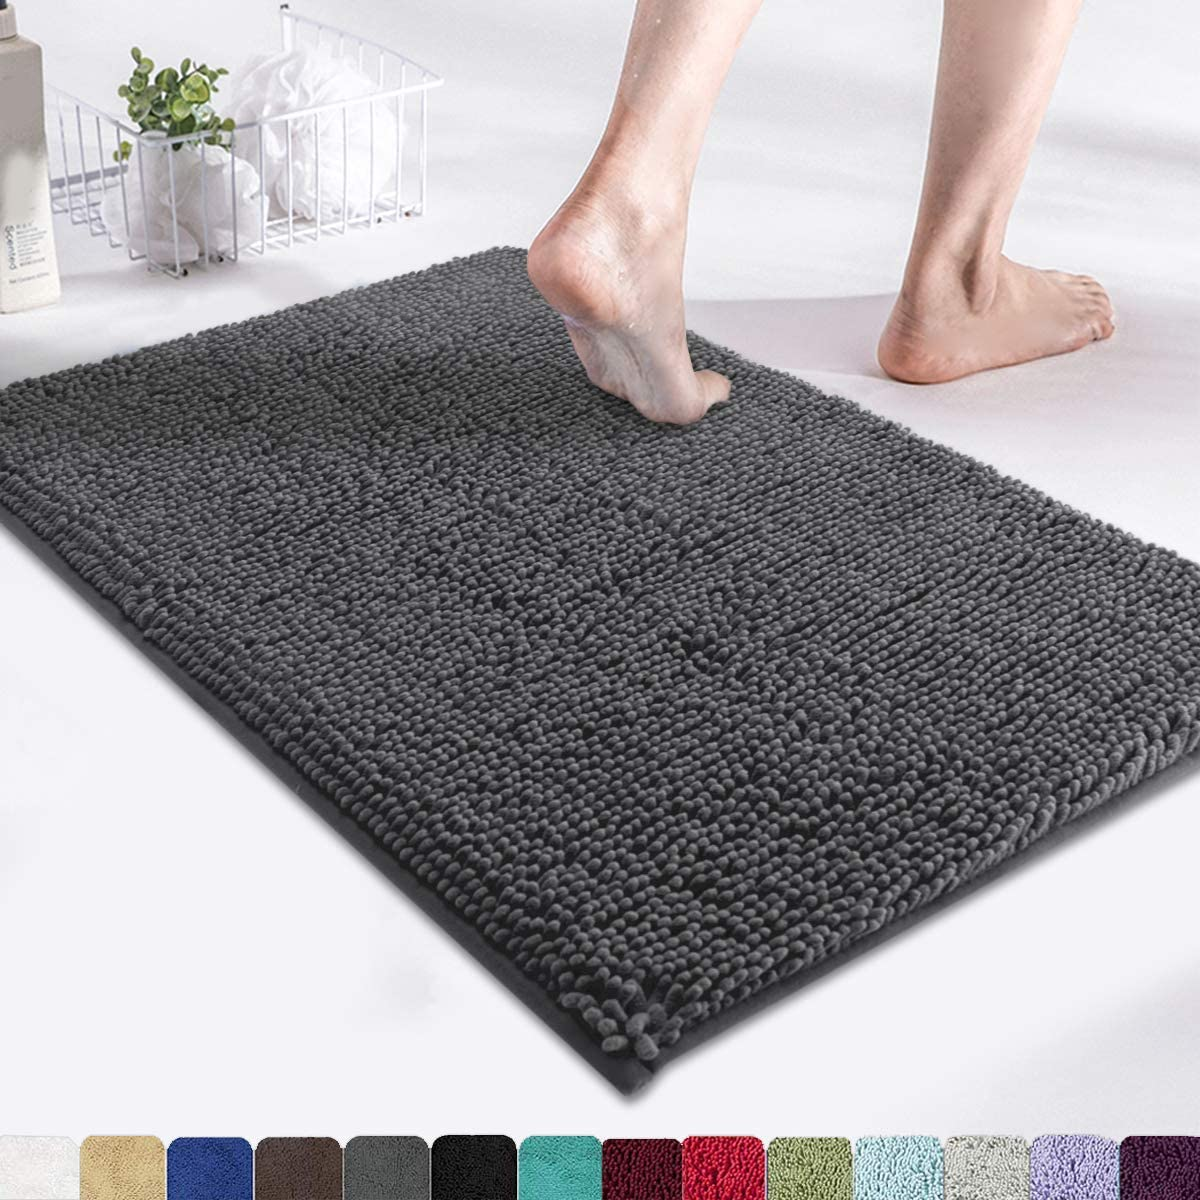 MAYSHINE Bath Mats for Bathroom Rugs Soft, Absorbent, Shaggy